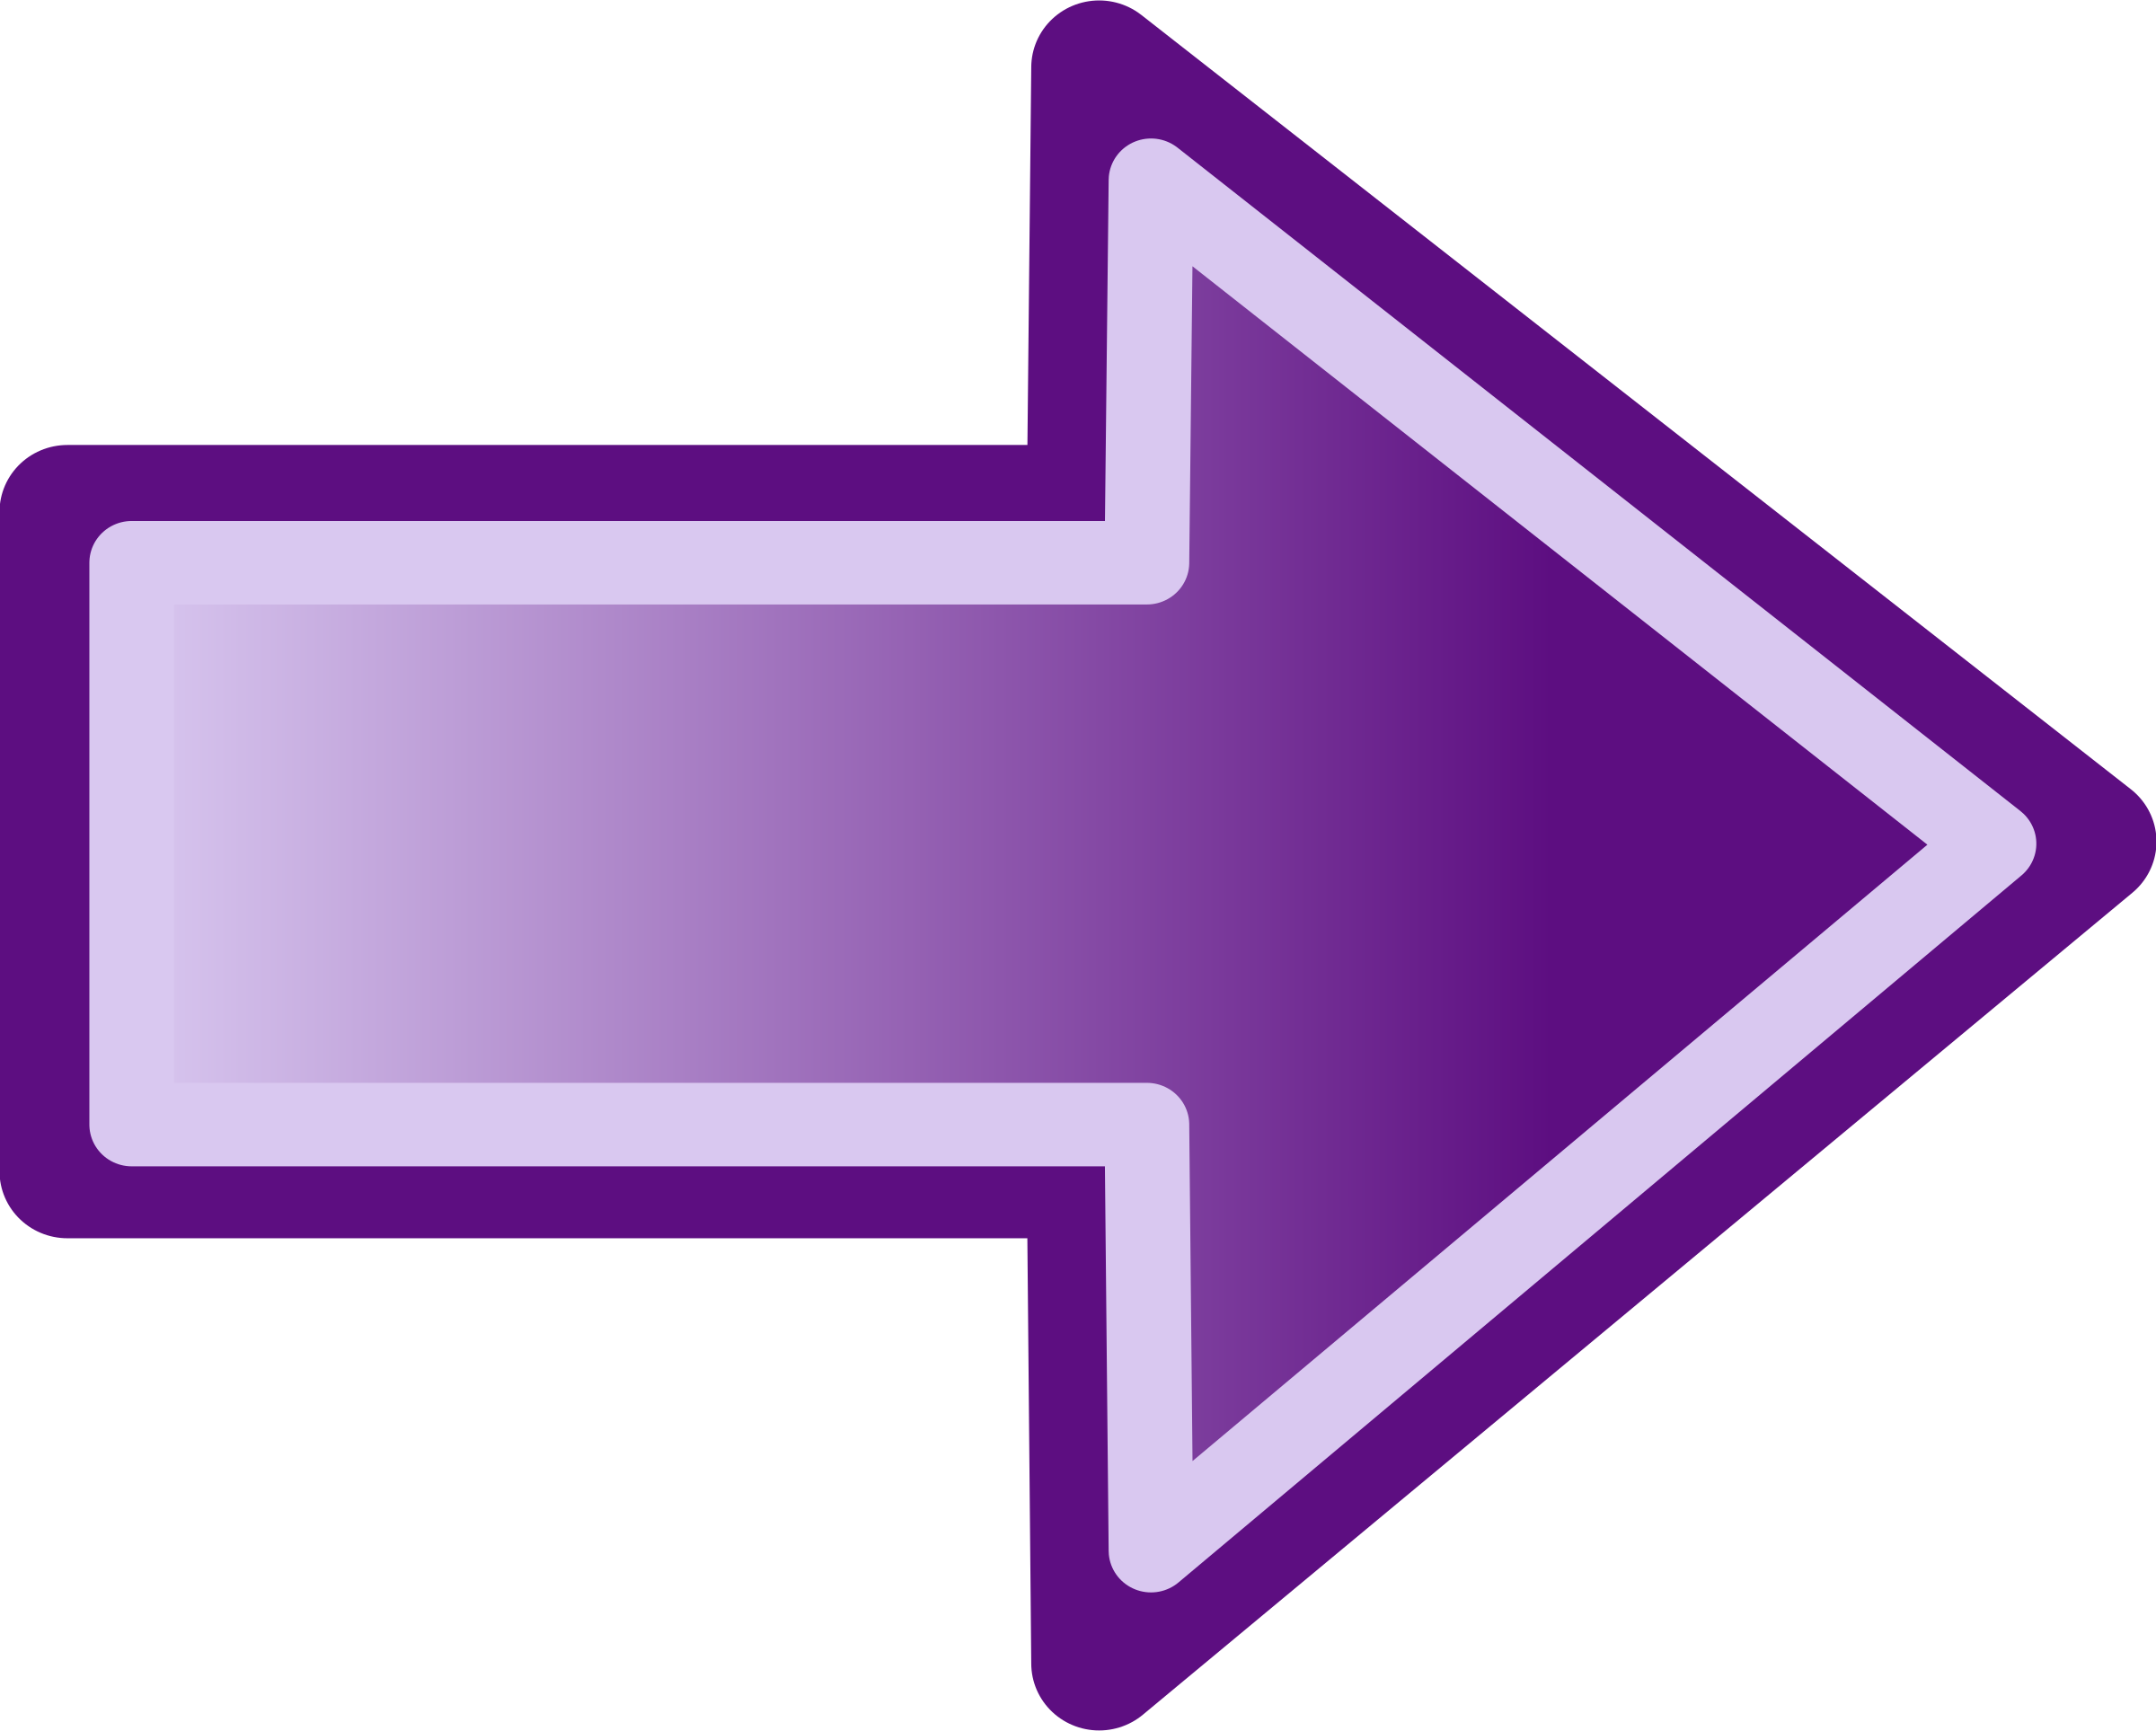 Purple arrow shape by jwalden